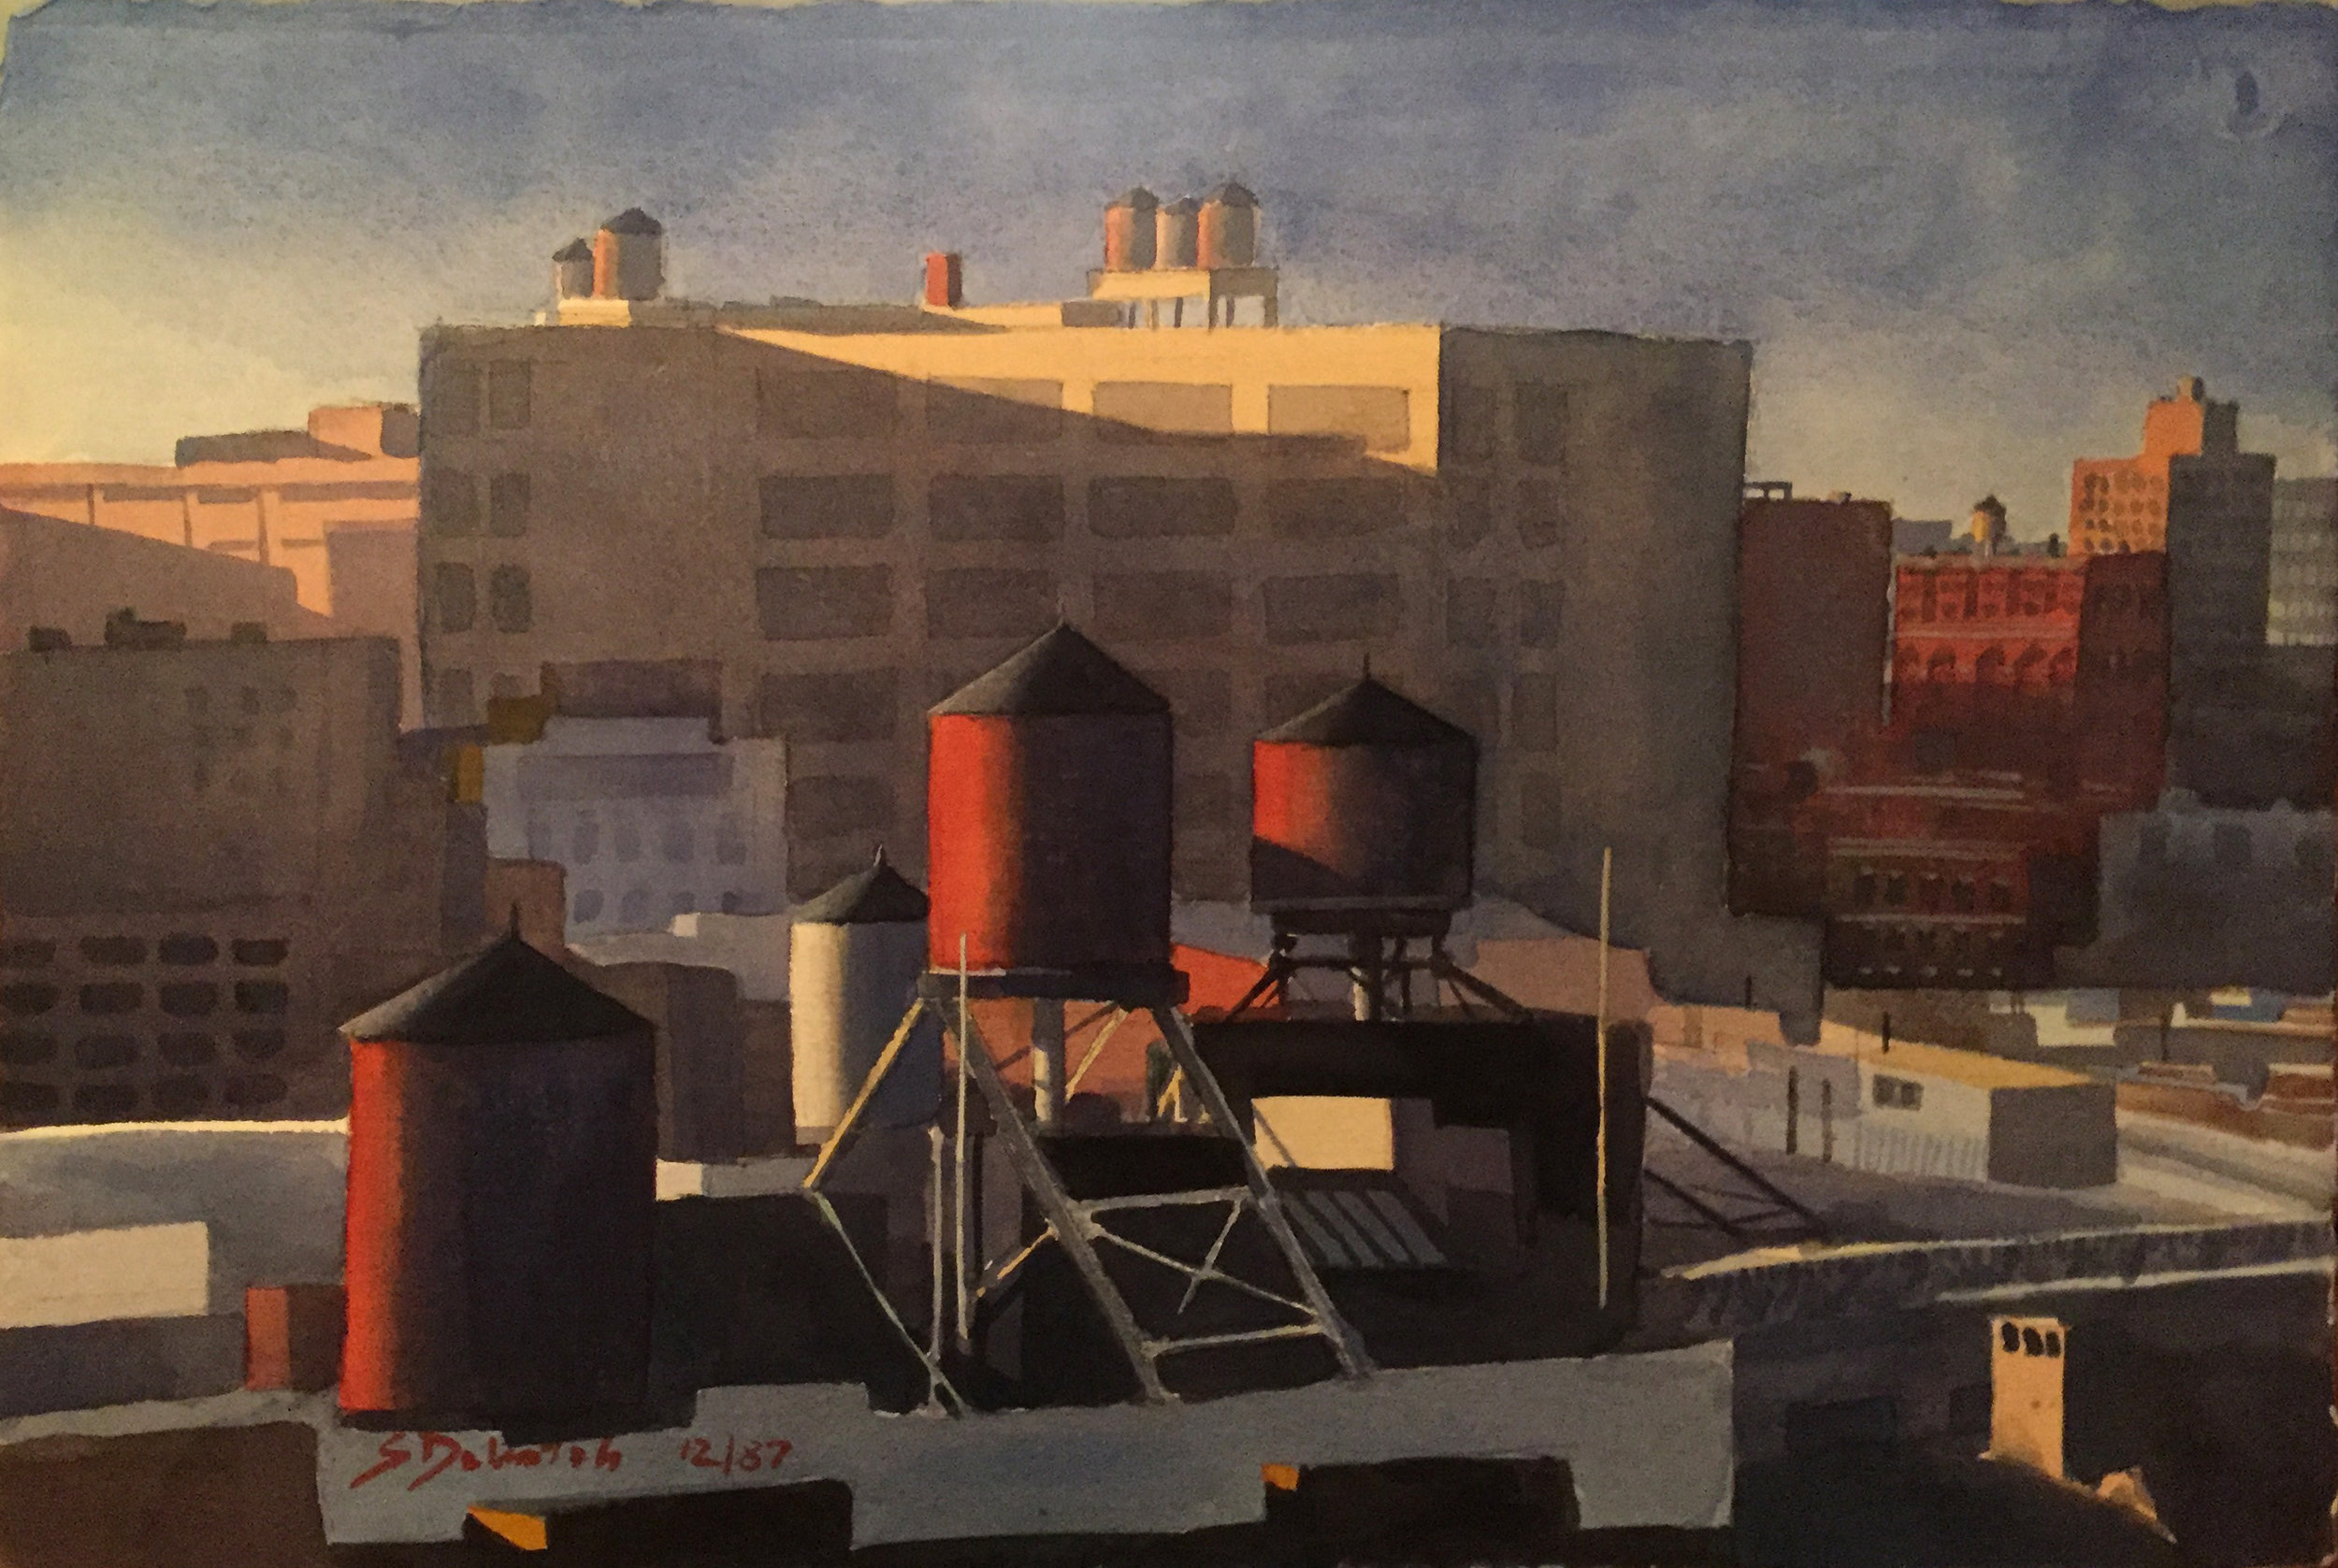 Water Tanks on Soho Rooftop, 1987